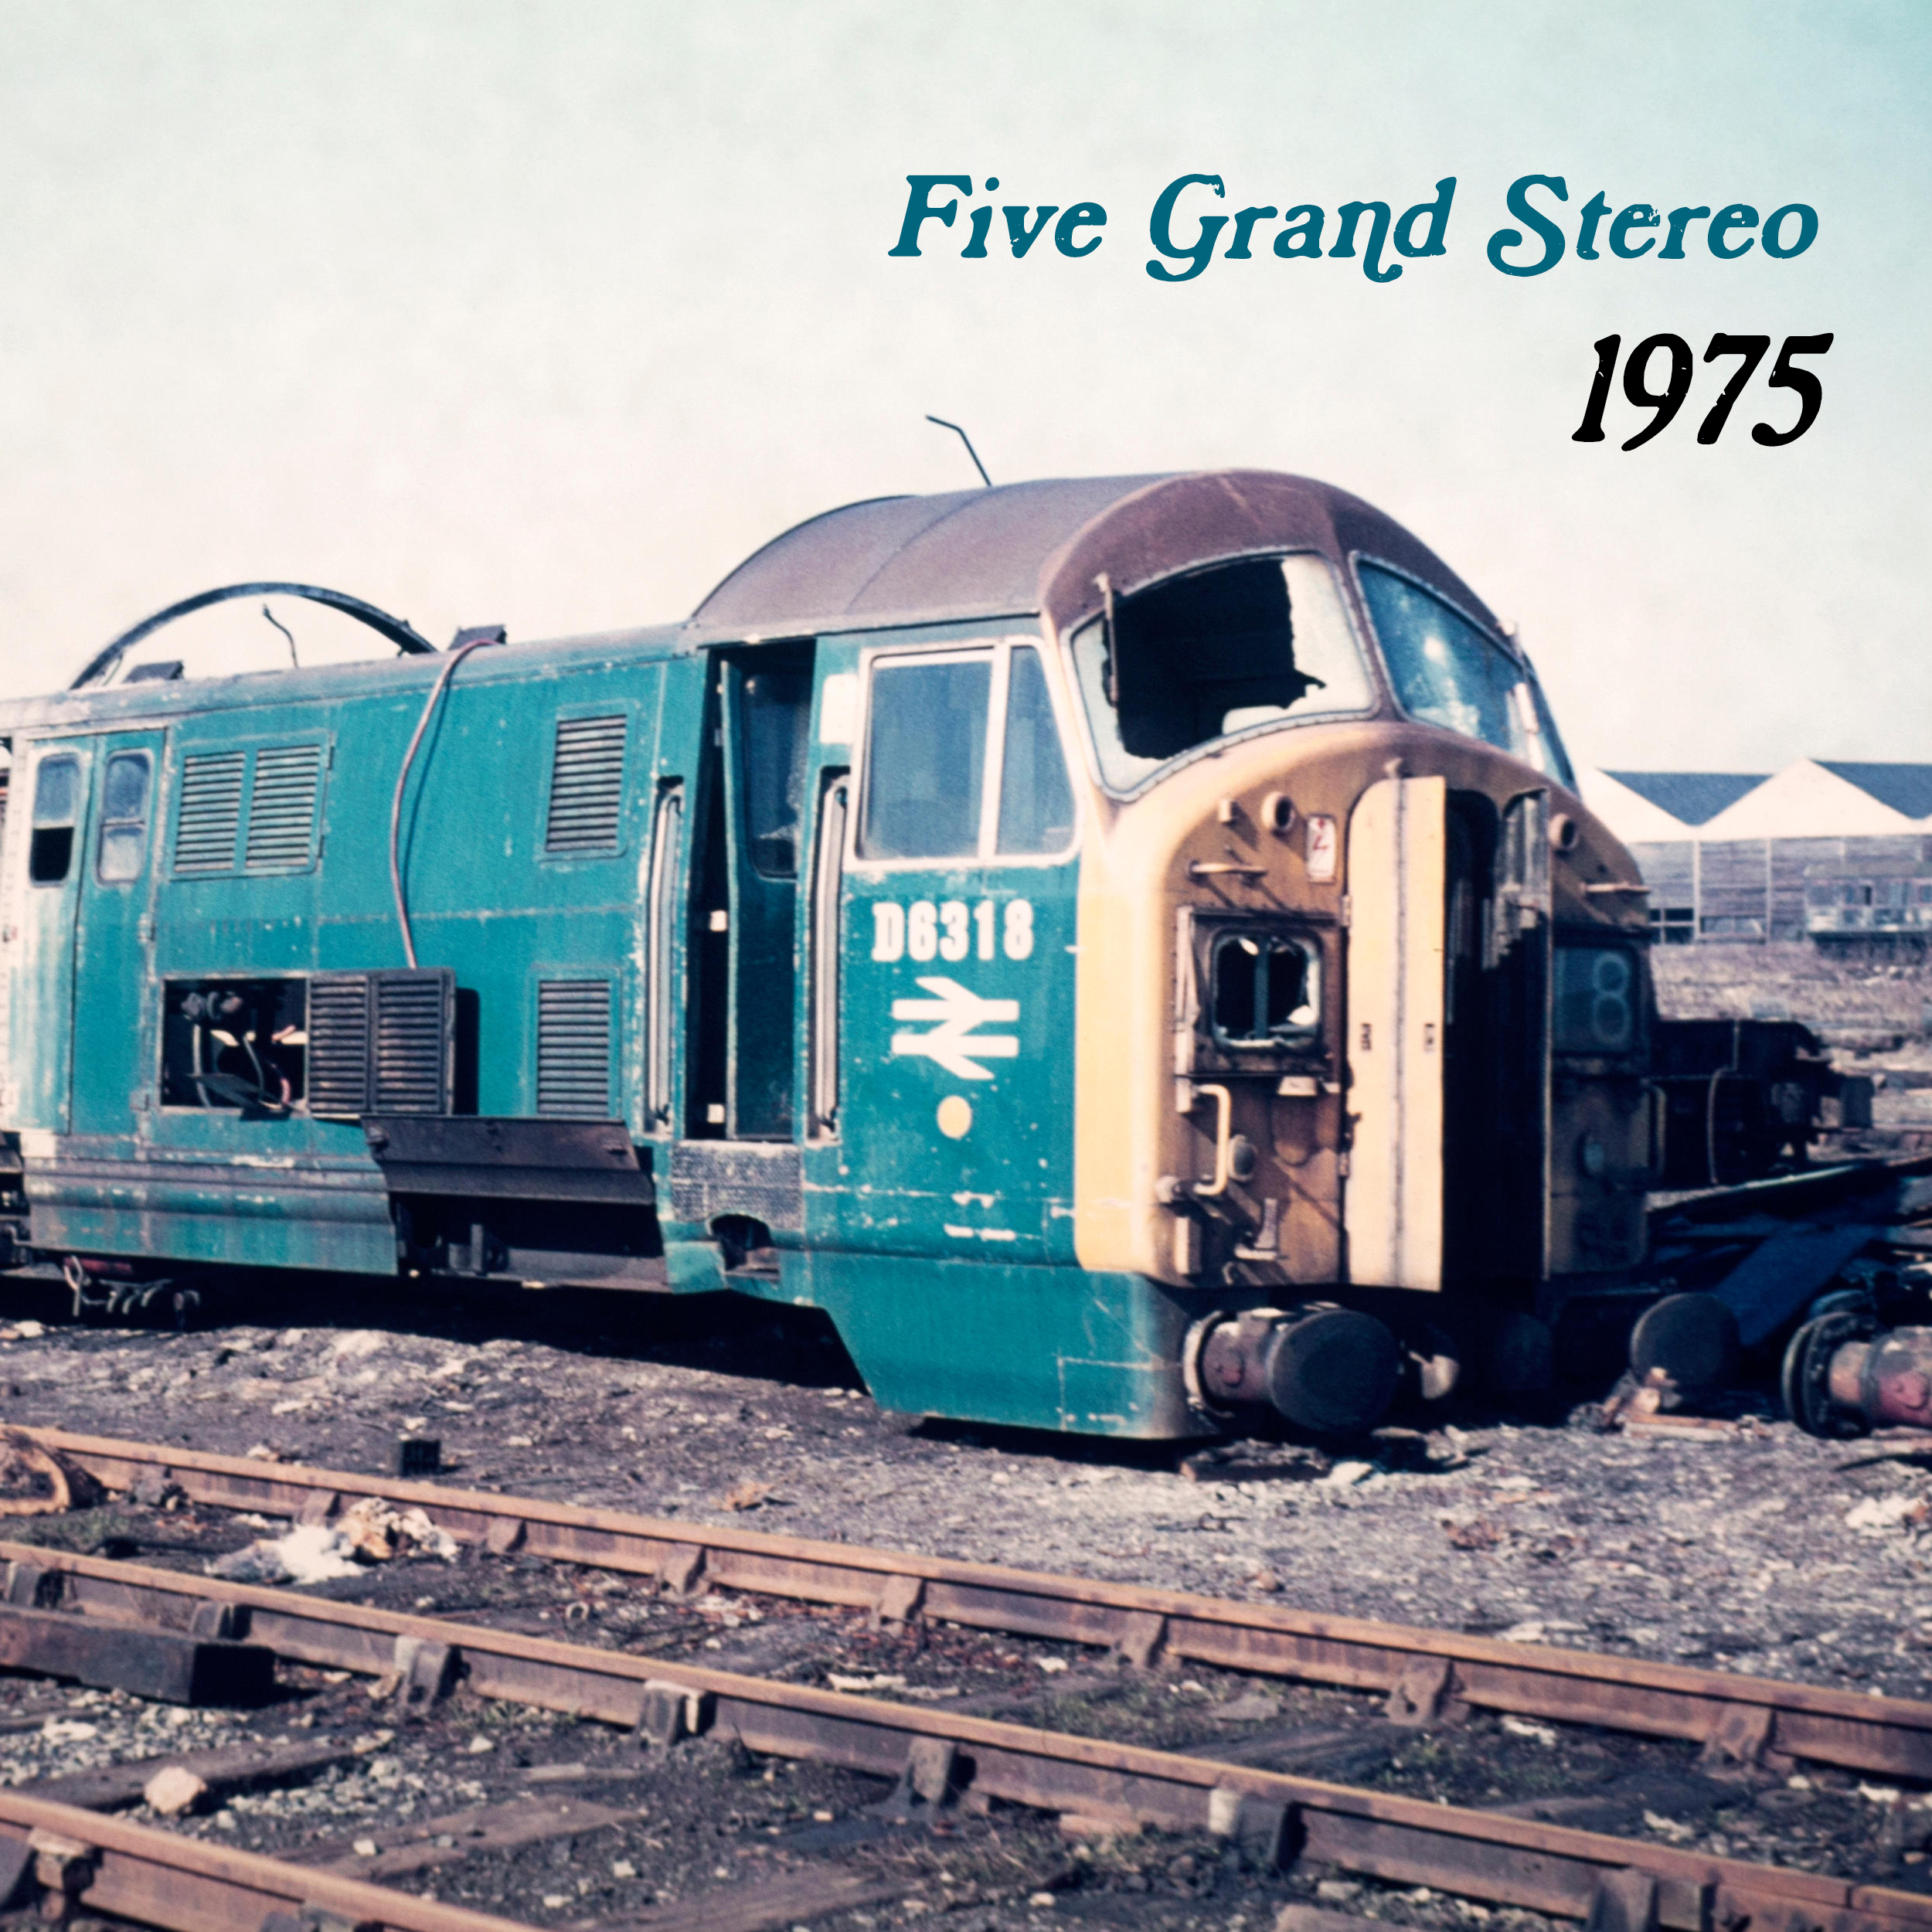 1975 by Five Grand Stereo